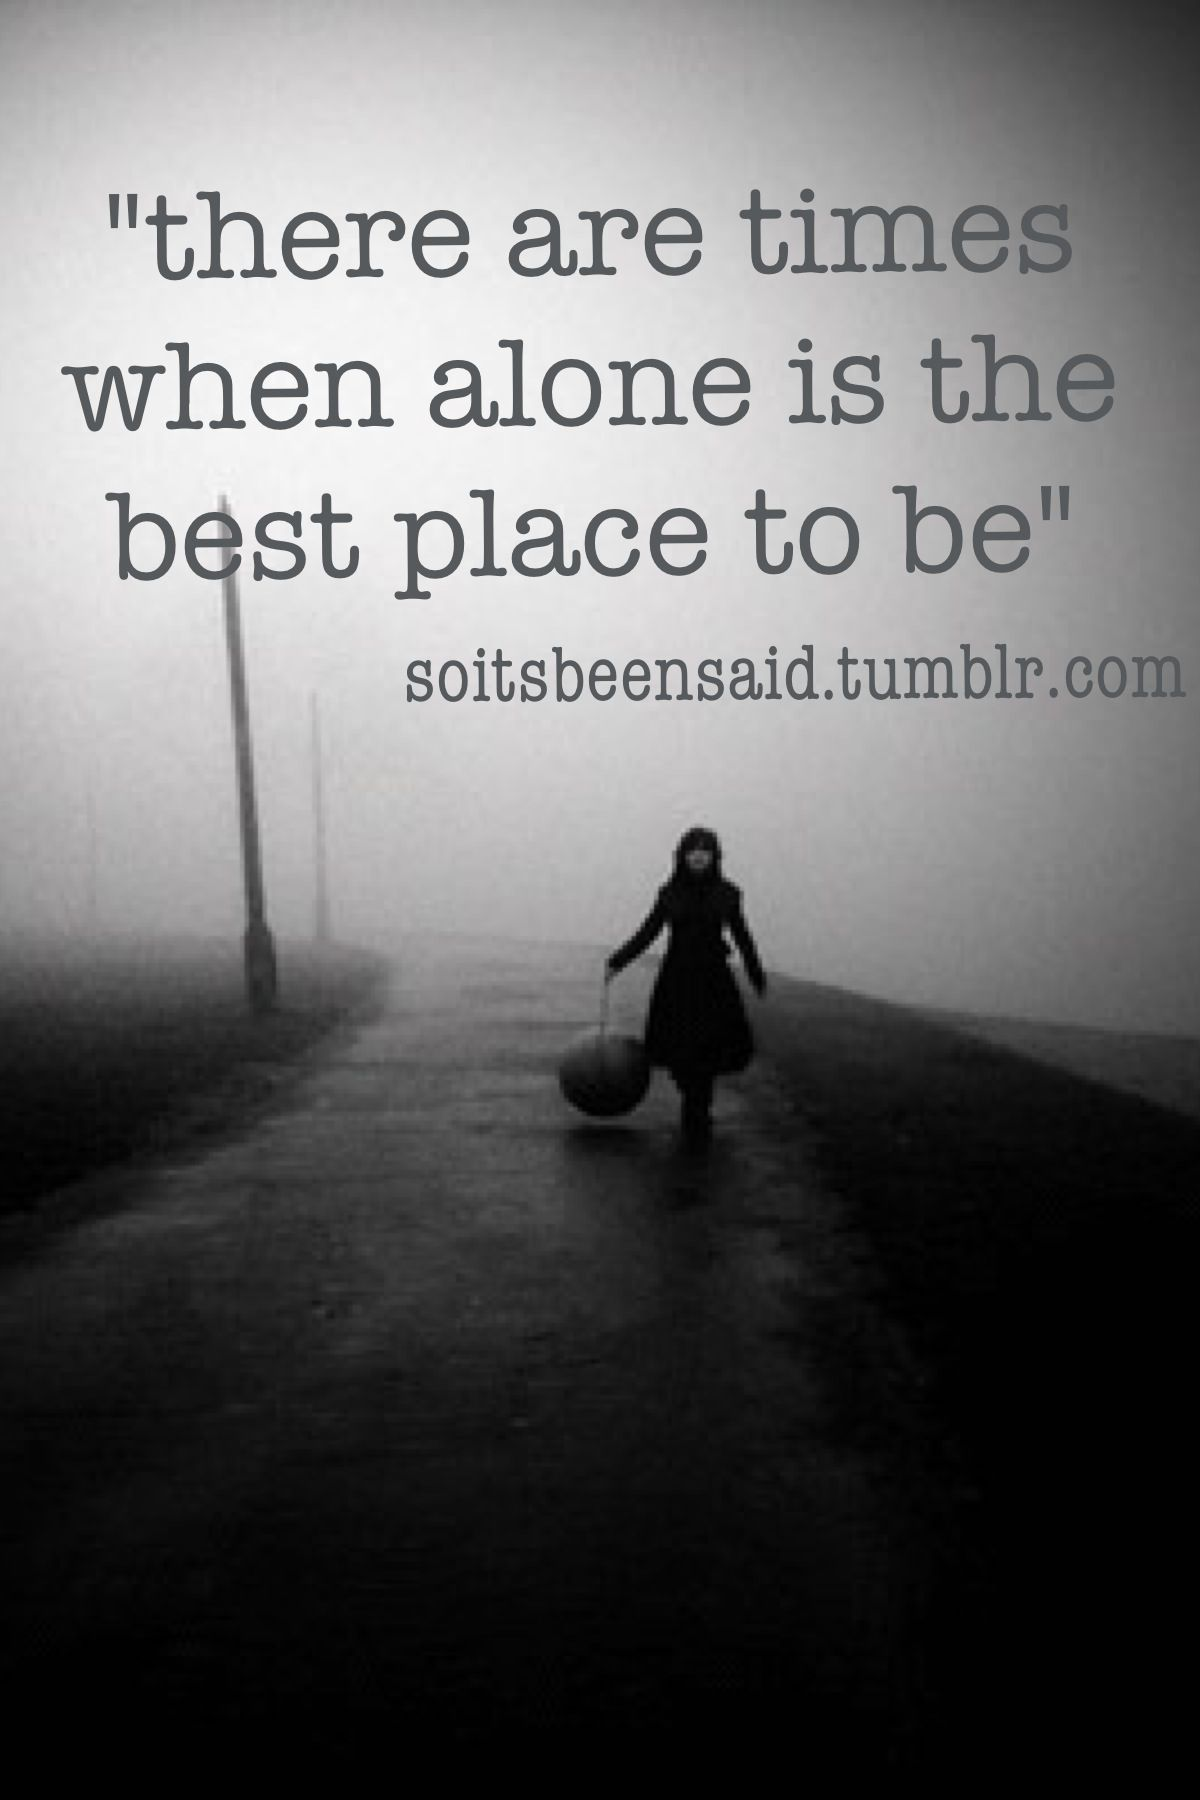 Quotes On Solitude Quotes Quote Quotation Quotations There Are Times When Alone Is